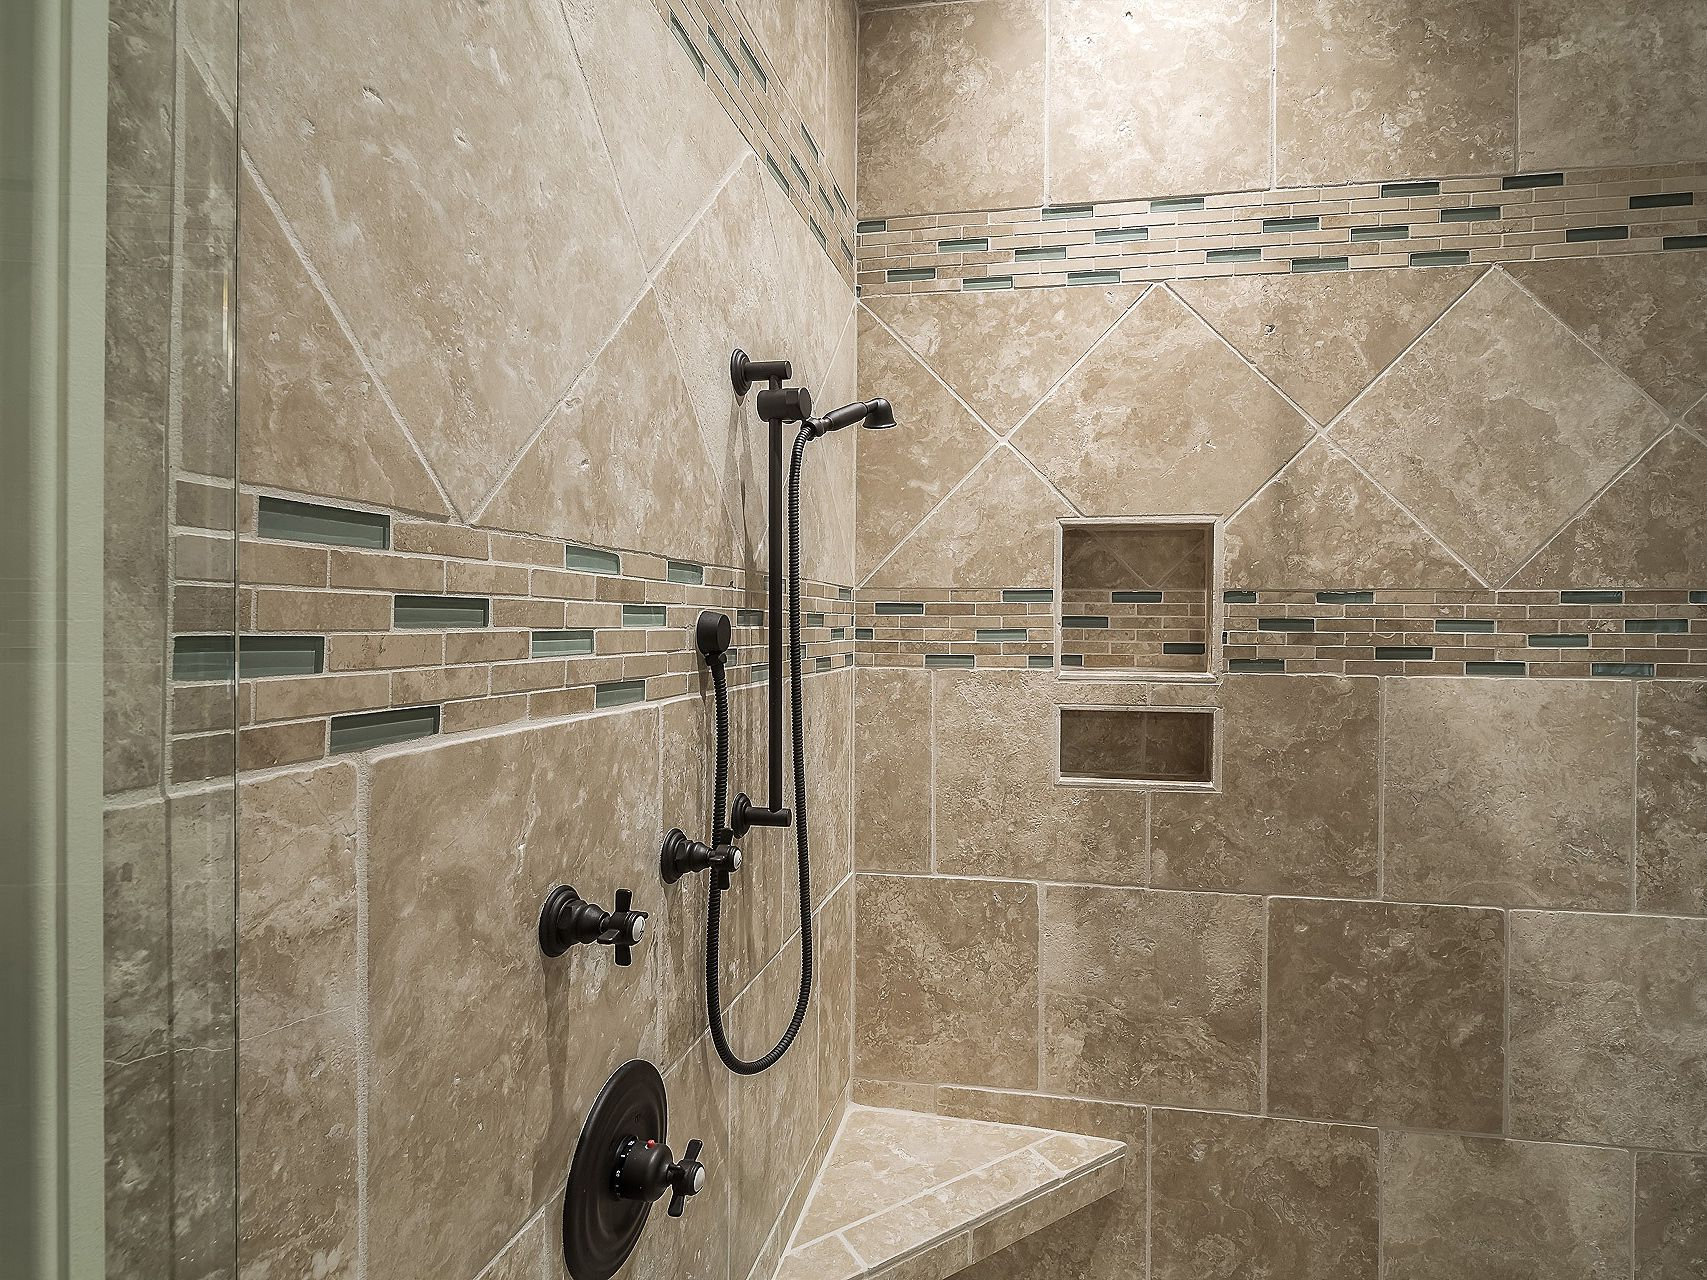 Admirable Grout Sealer Basics And Application Guide Interior Design Ideas Tzicisoteloinfo